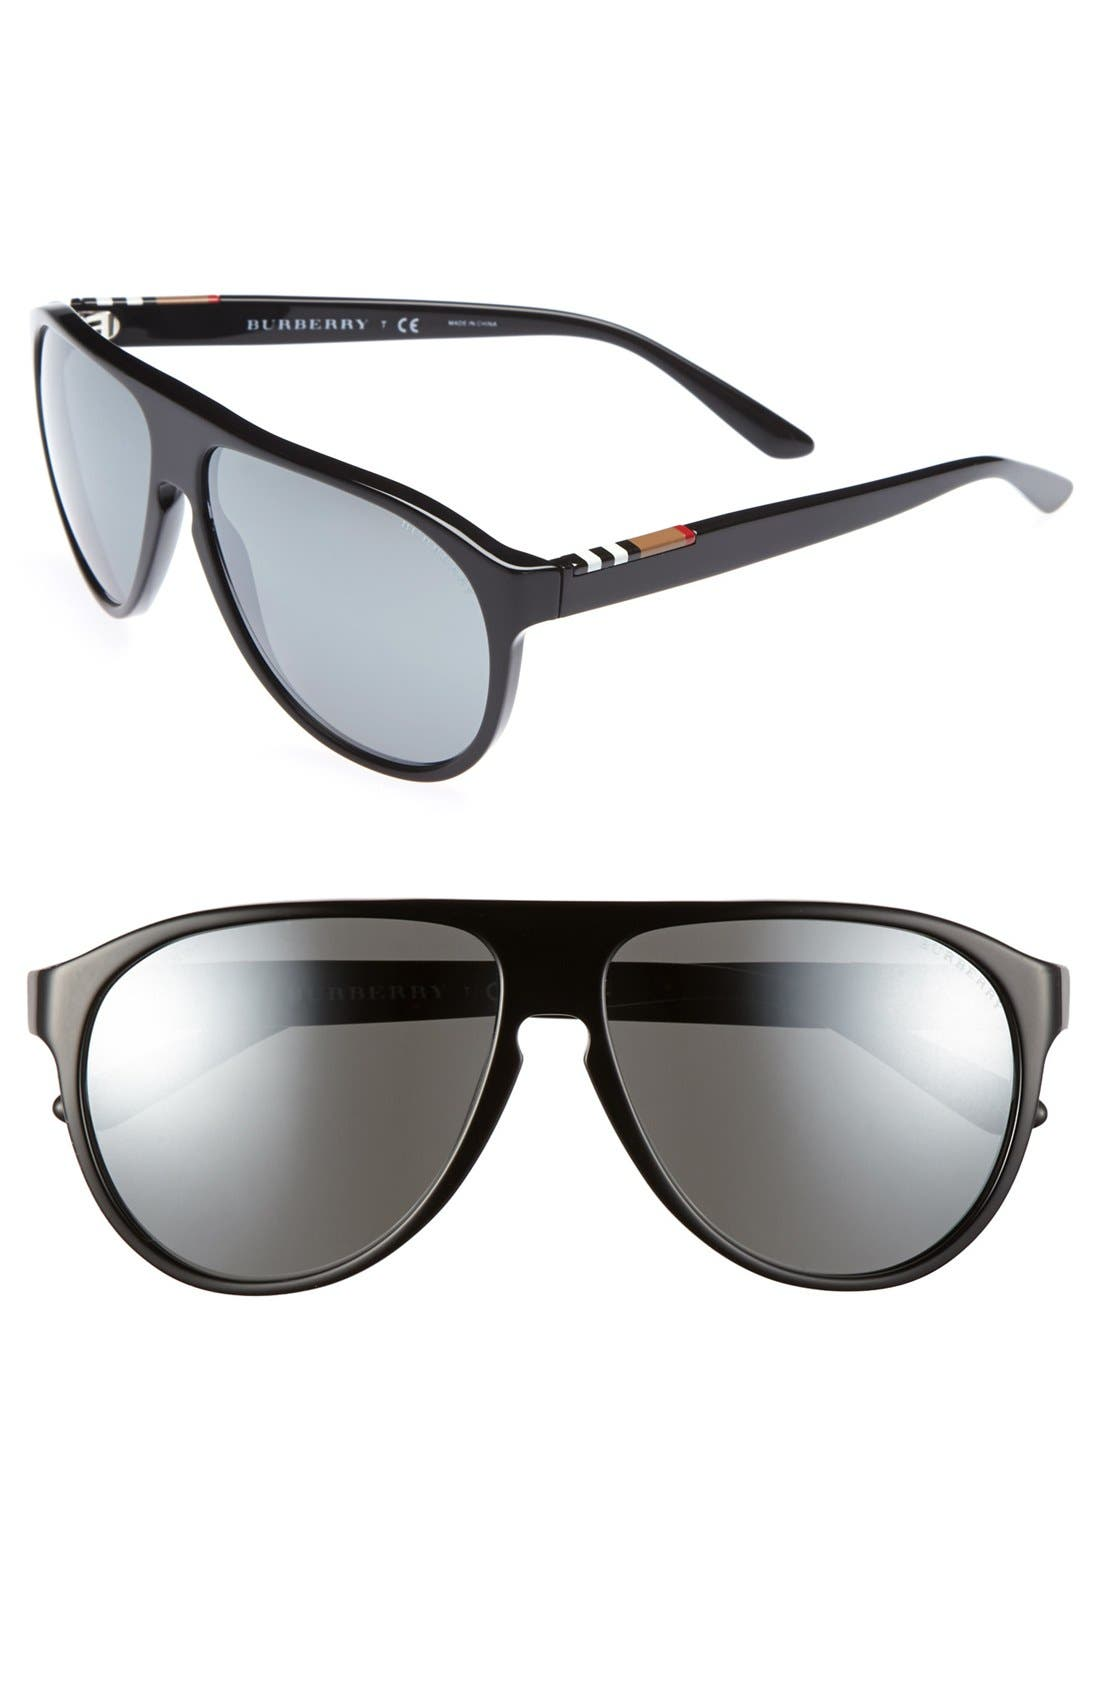 Alternate Image 1 Selected - Burberry 59mm Keyhole Sunglasses